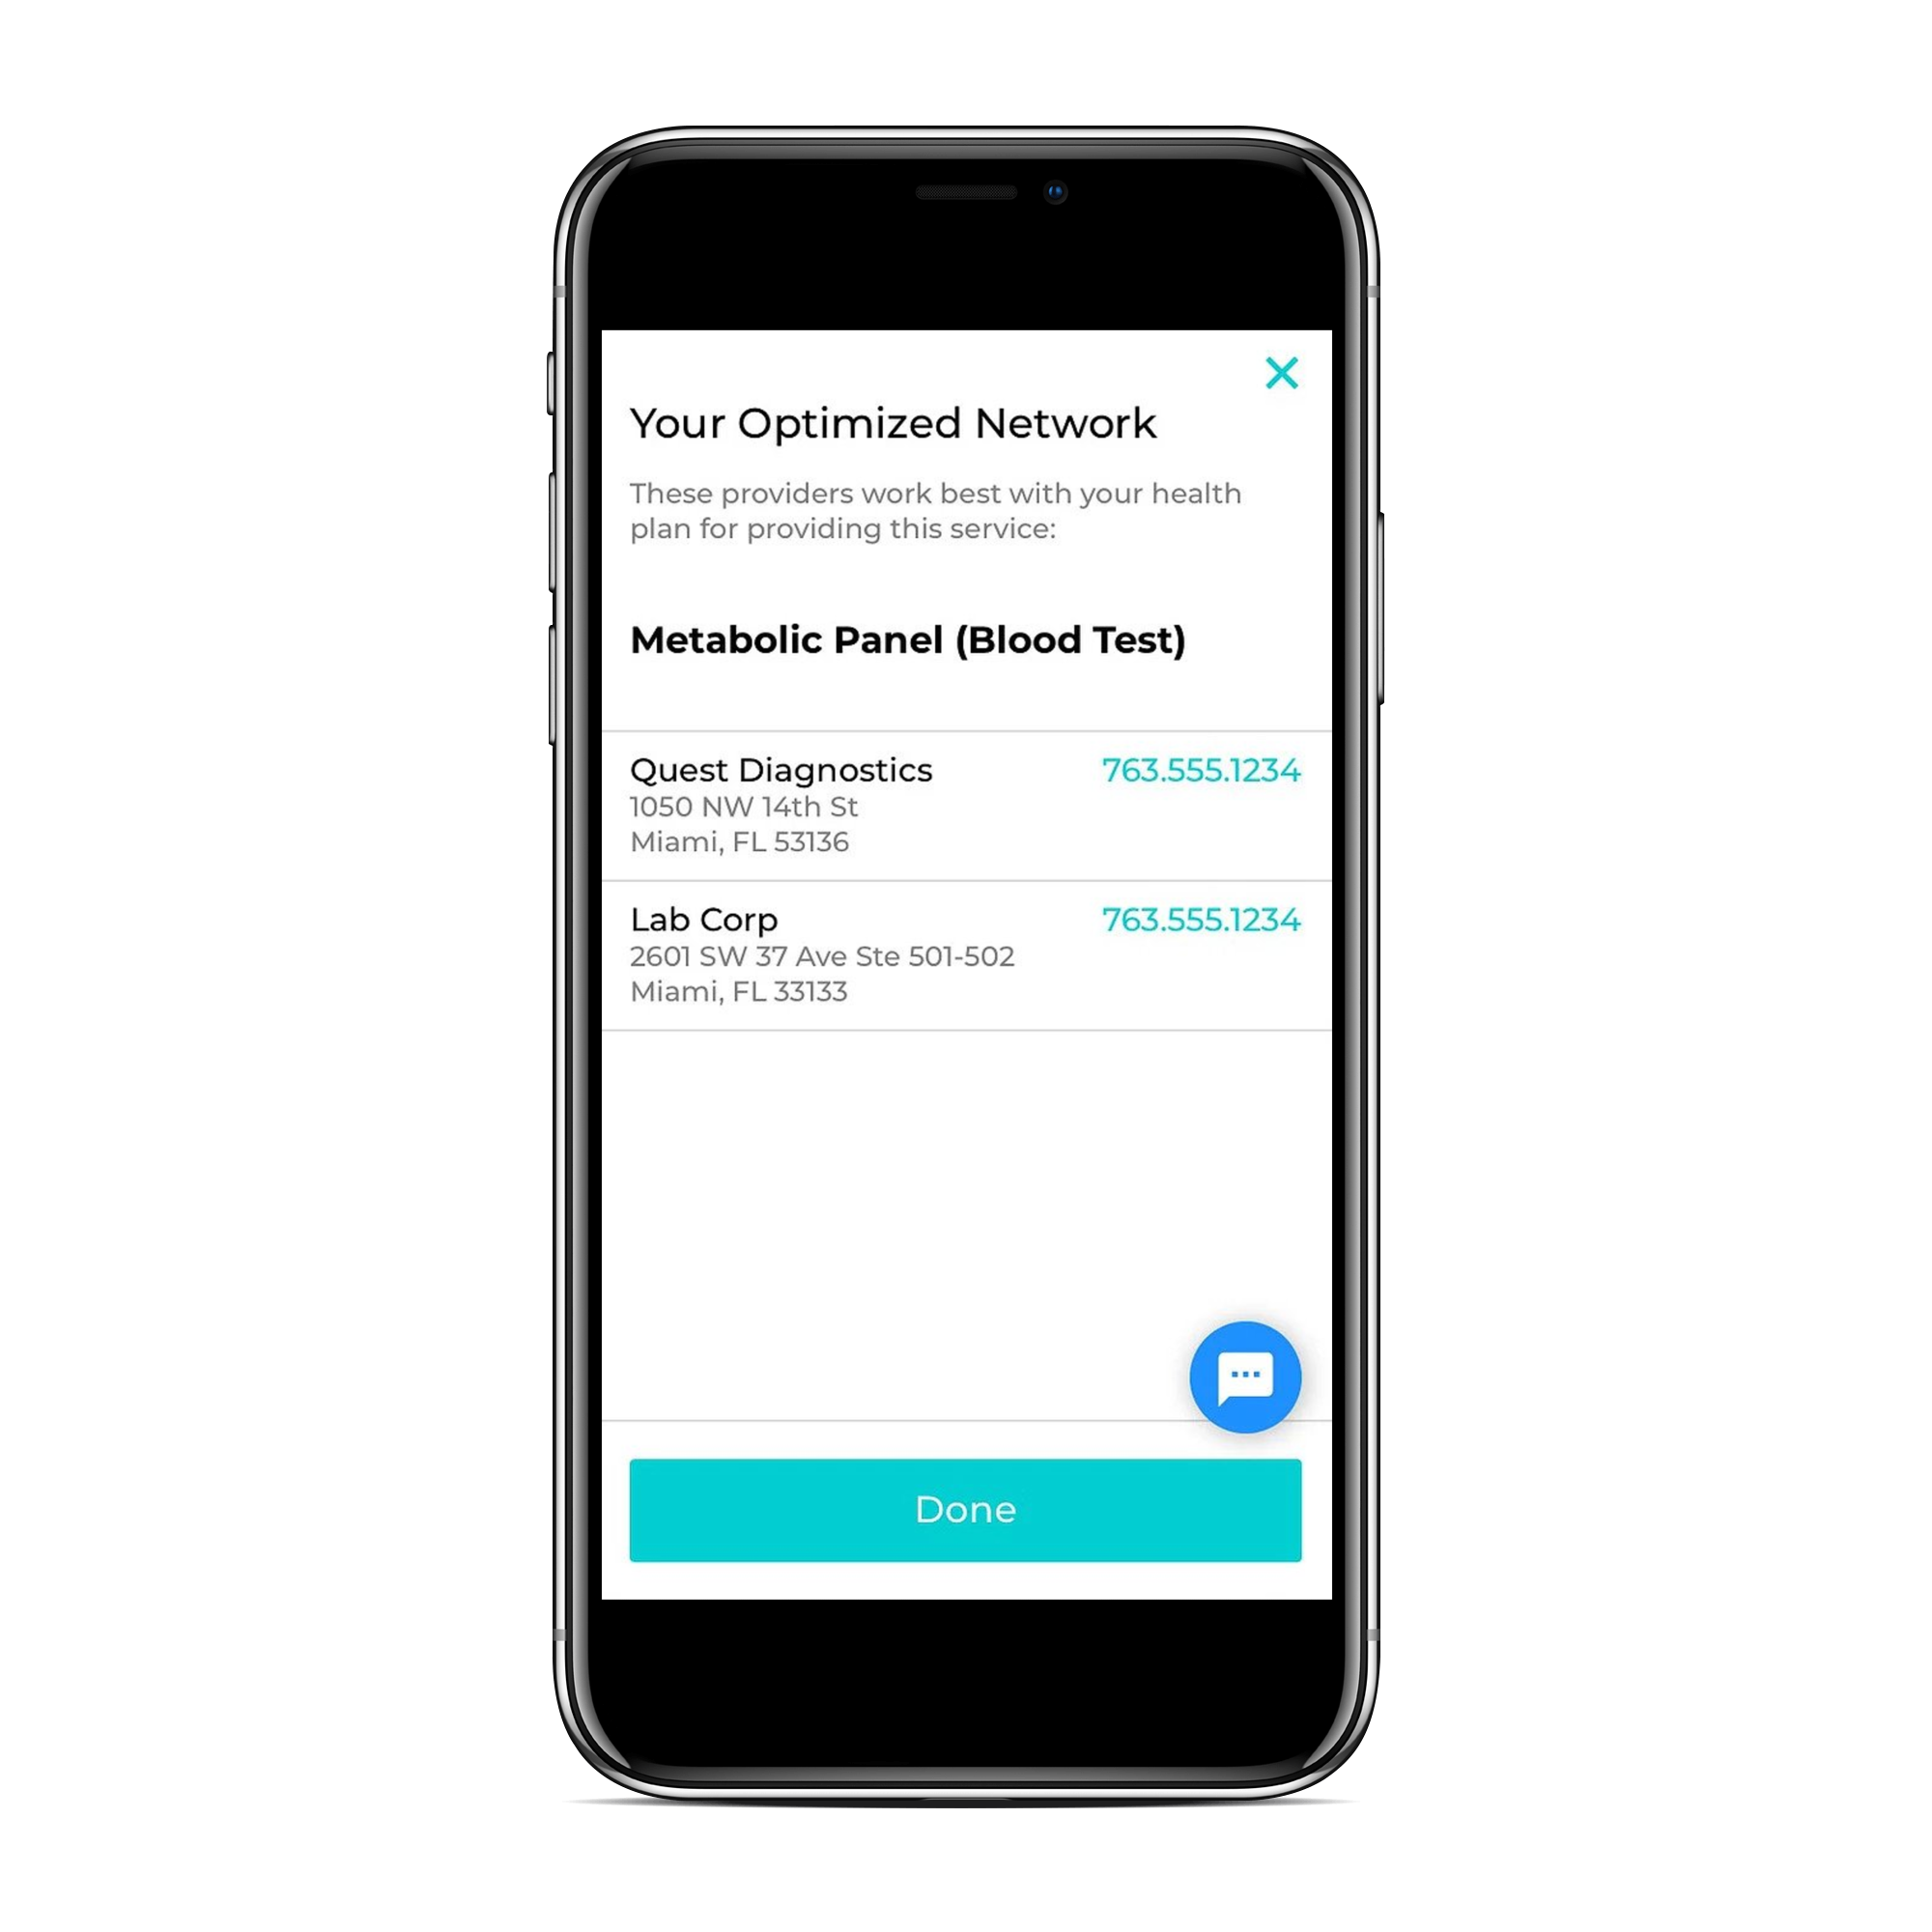 Mobile App - Find Stewardship providers and ensure good healthcare at a low price. Available in early 2020 through your company's HR administrator.